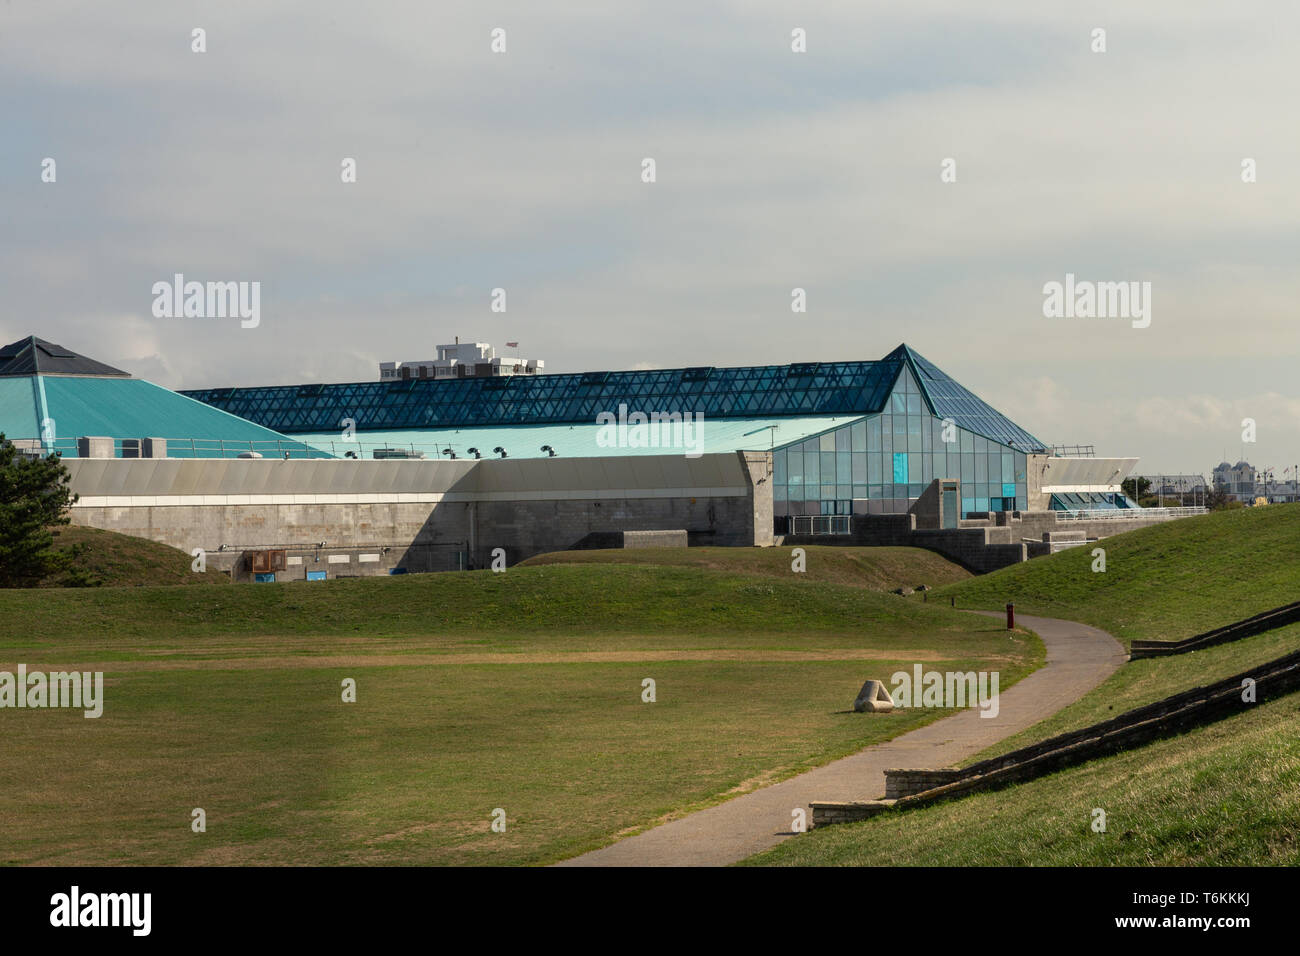 The Portsmouth Pyramids Centre (also known as the Pyramids) is an indoor leisure complex in Southsea, Portsmouth, Hampshire, England. Stock Photo